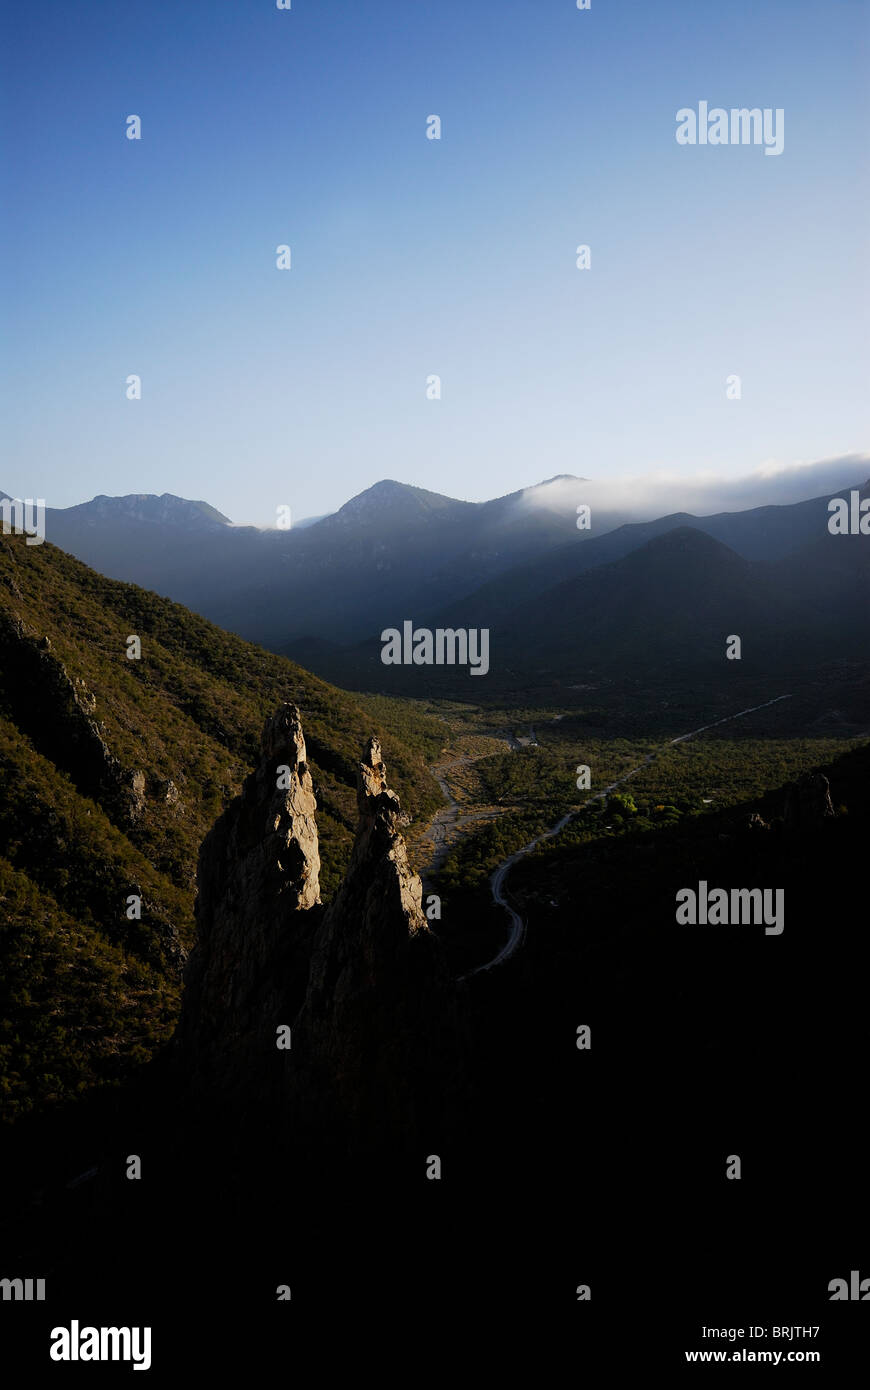 Rock spires in a mountain valley in Mexico. - Stock Image